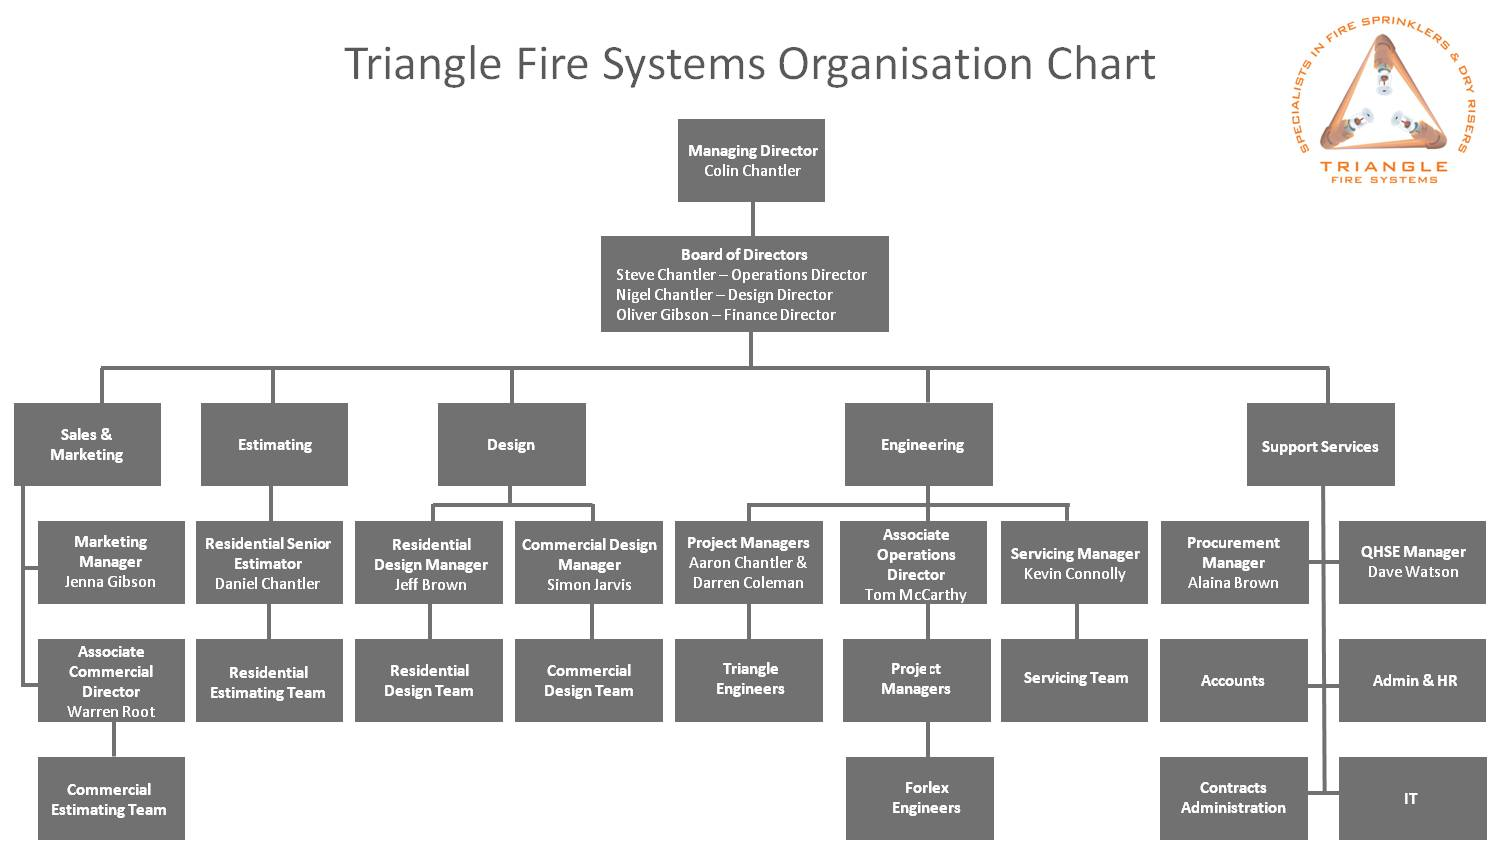 Organisational Chart - Triangle Sprinkler Systems